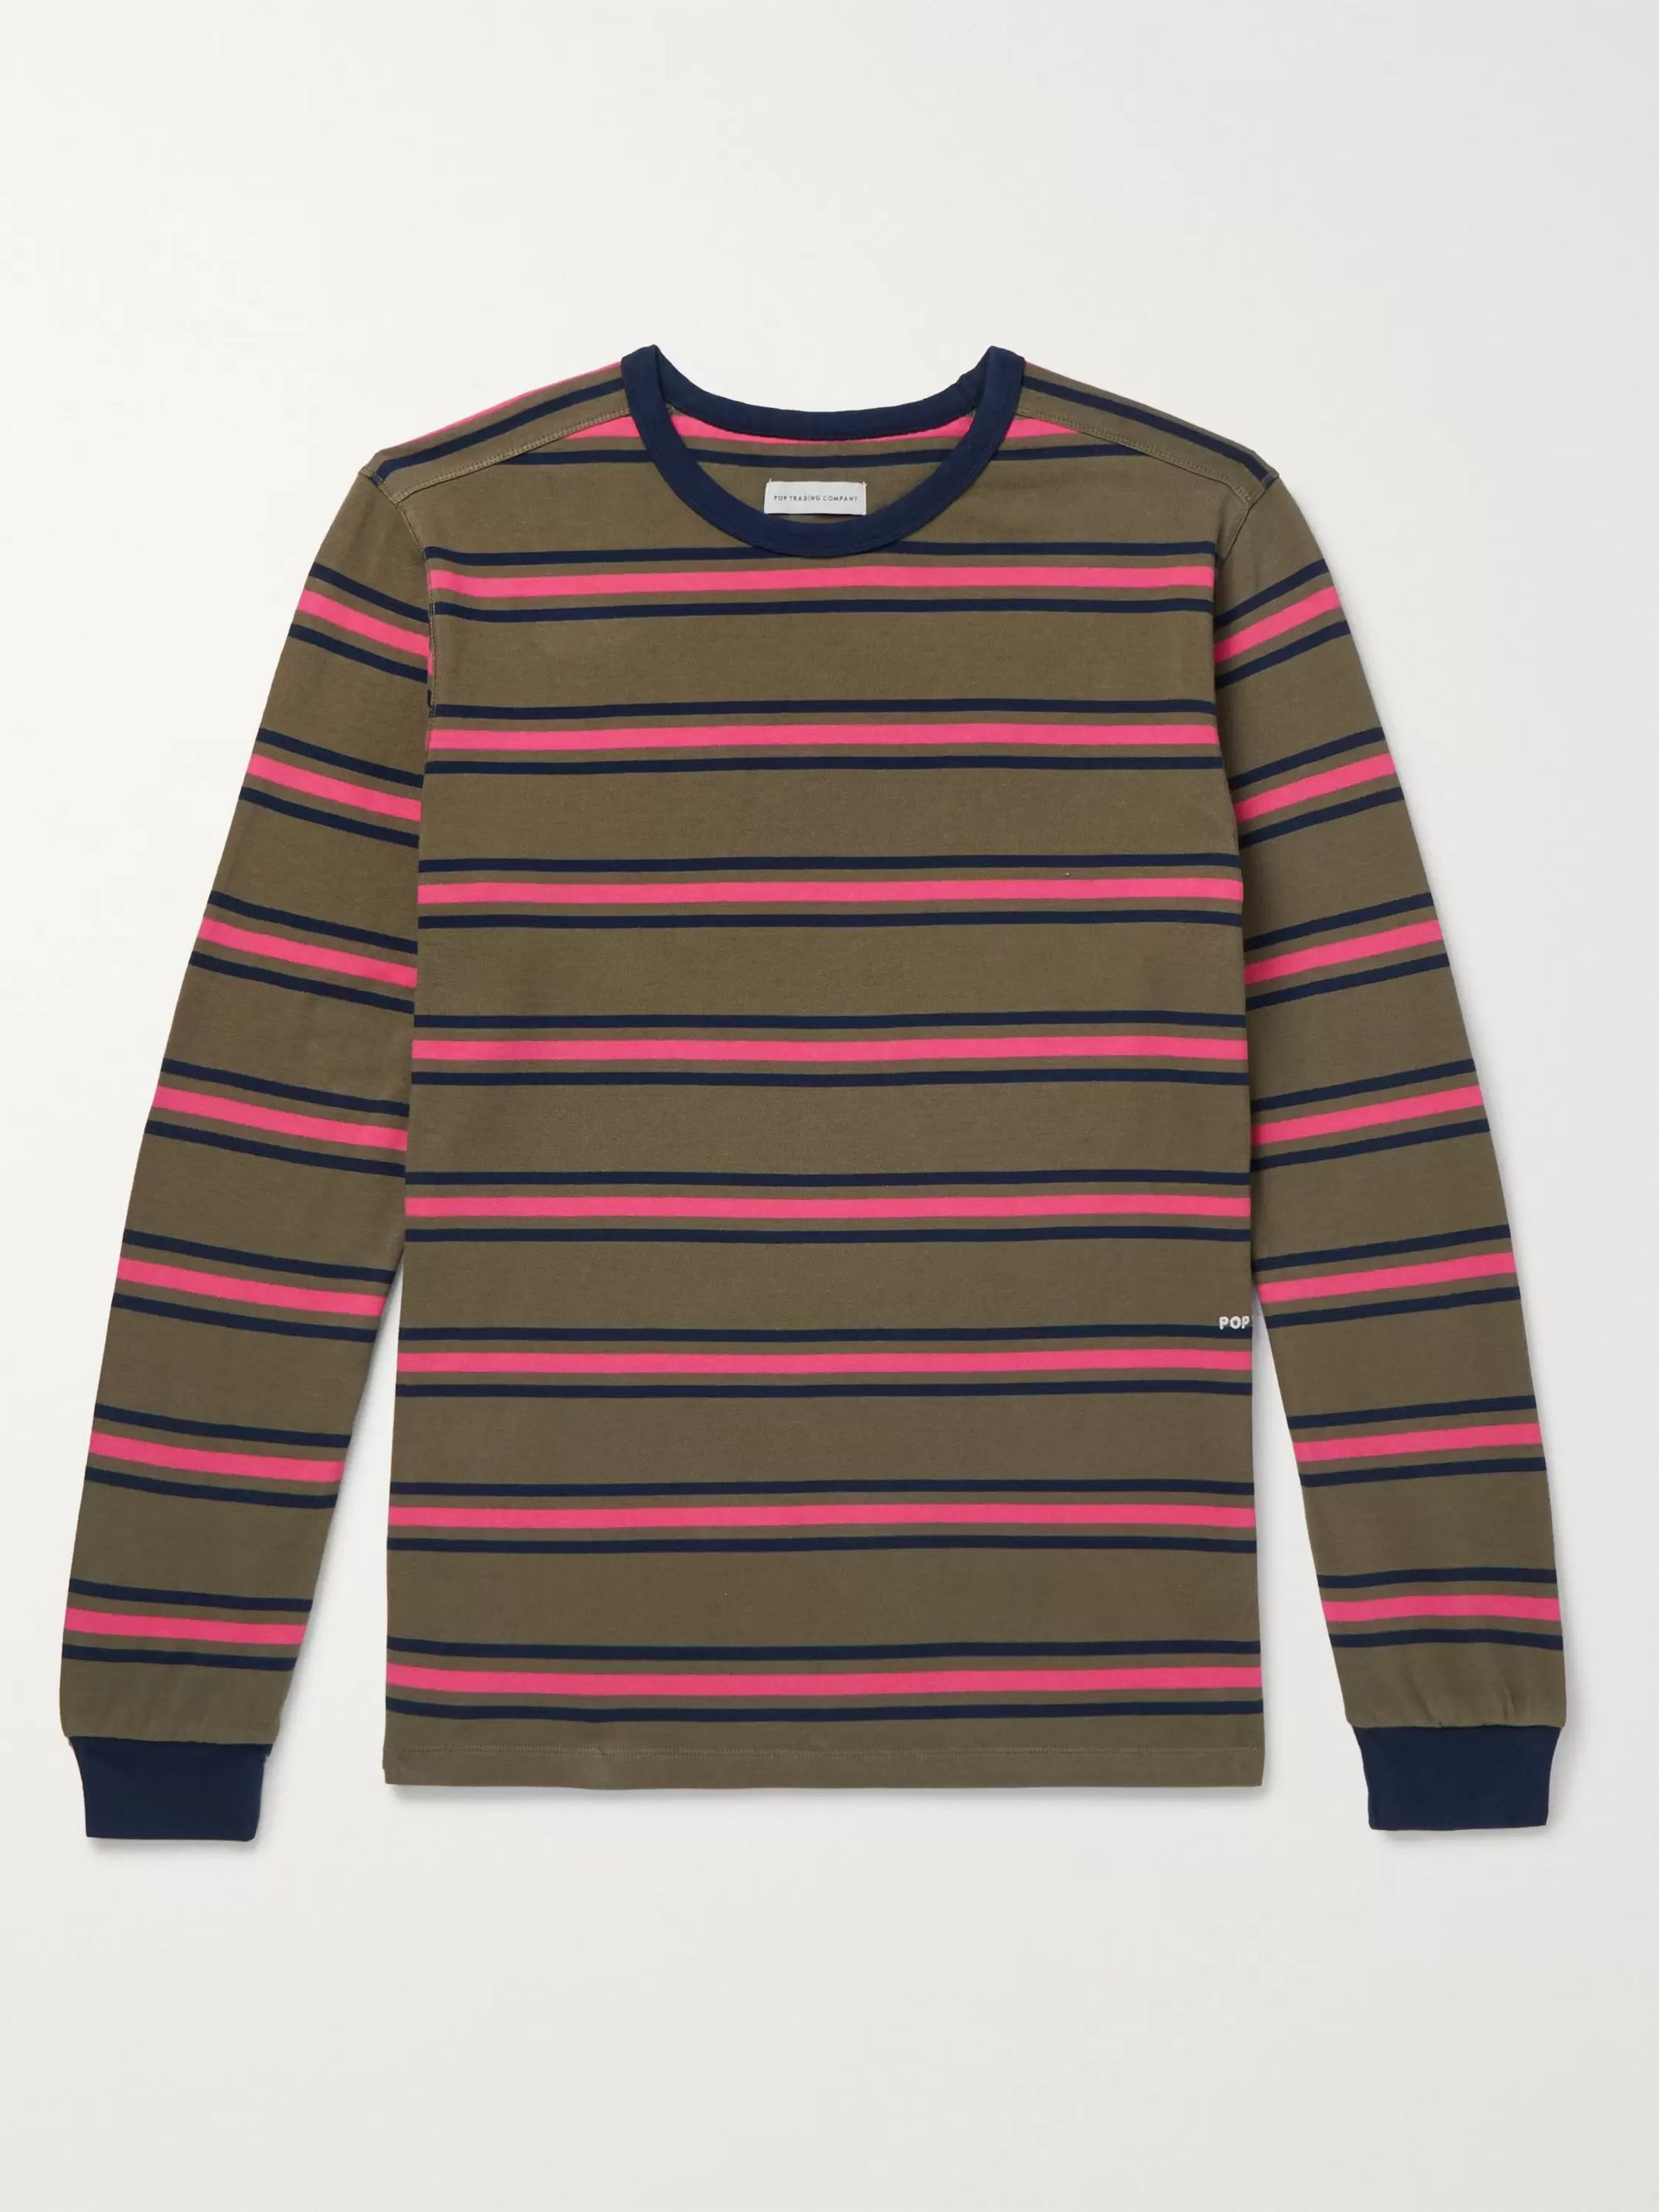 Pop Trading Company Harold Striped Cotton-Jersey T-Shirt